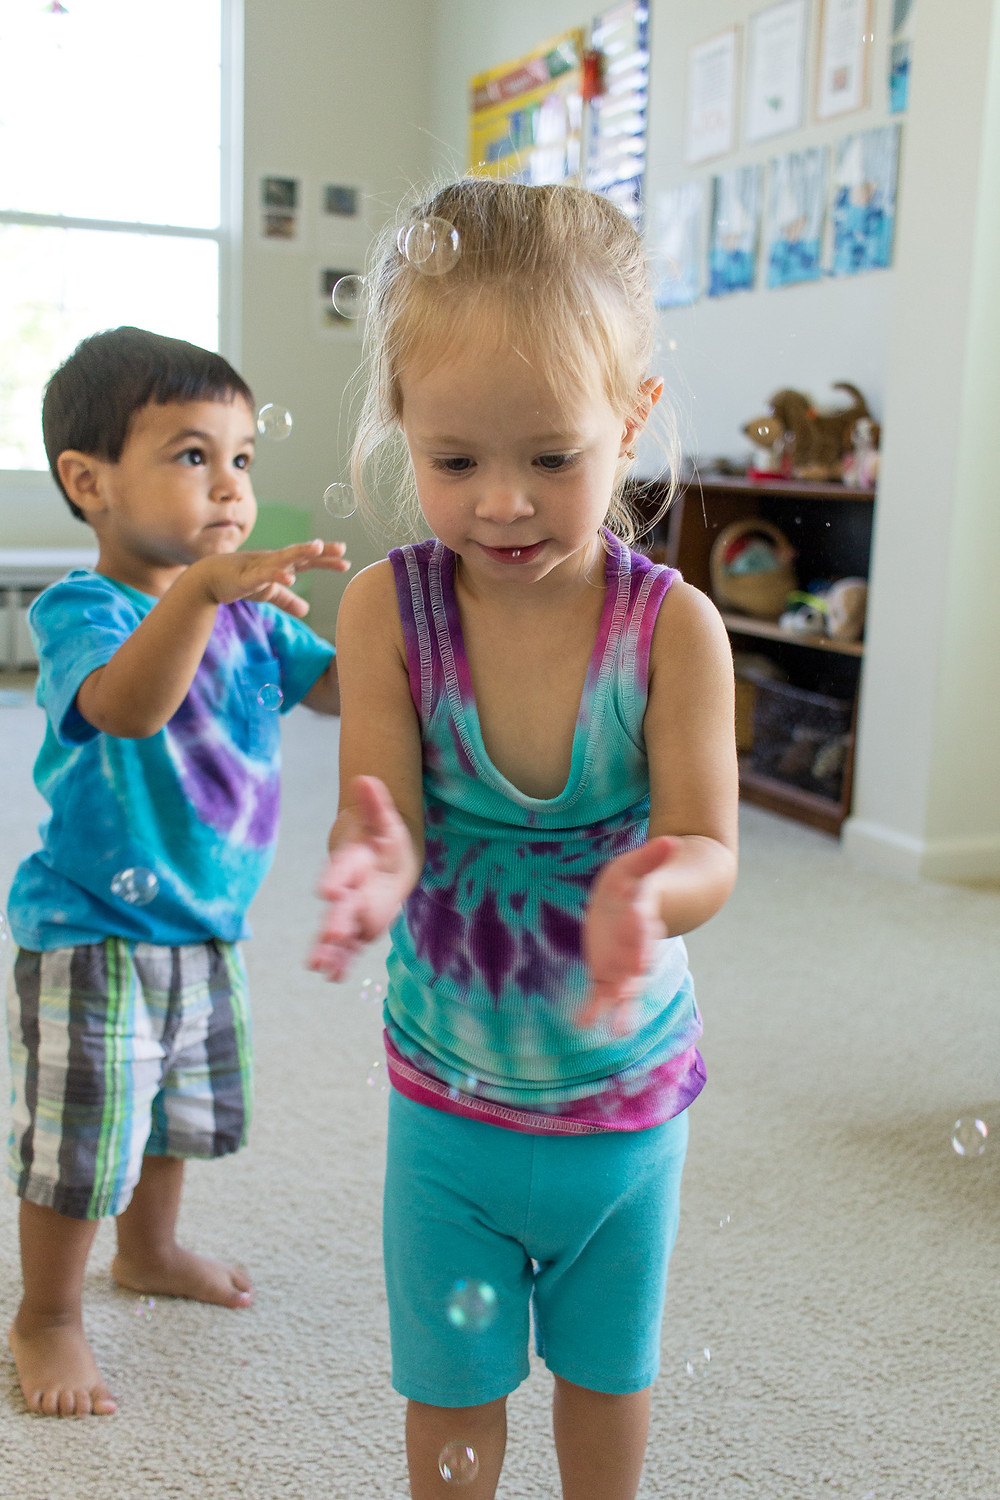 Popping bubbles at Blue Sky Daycare!